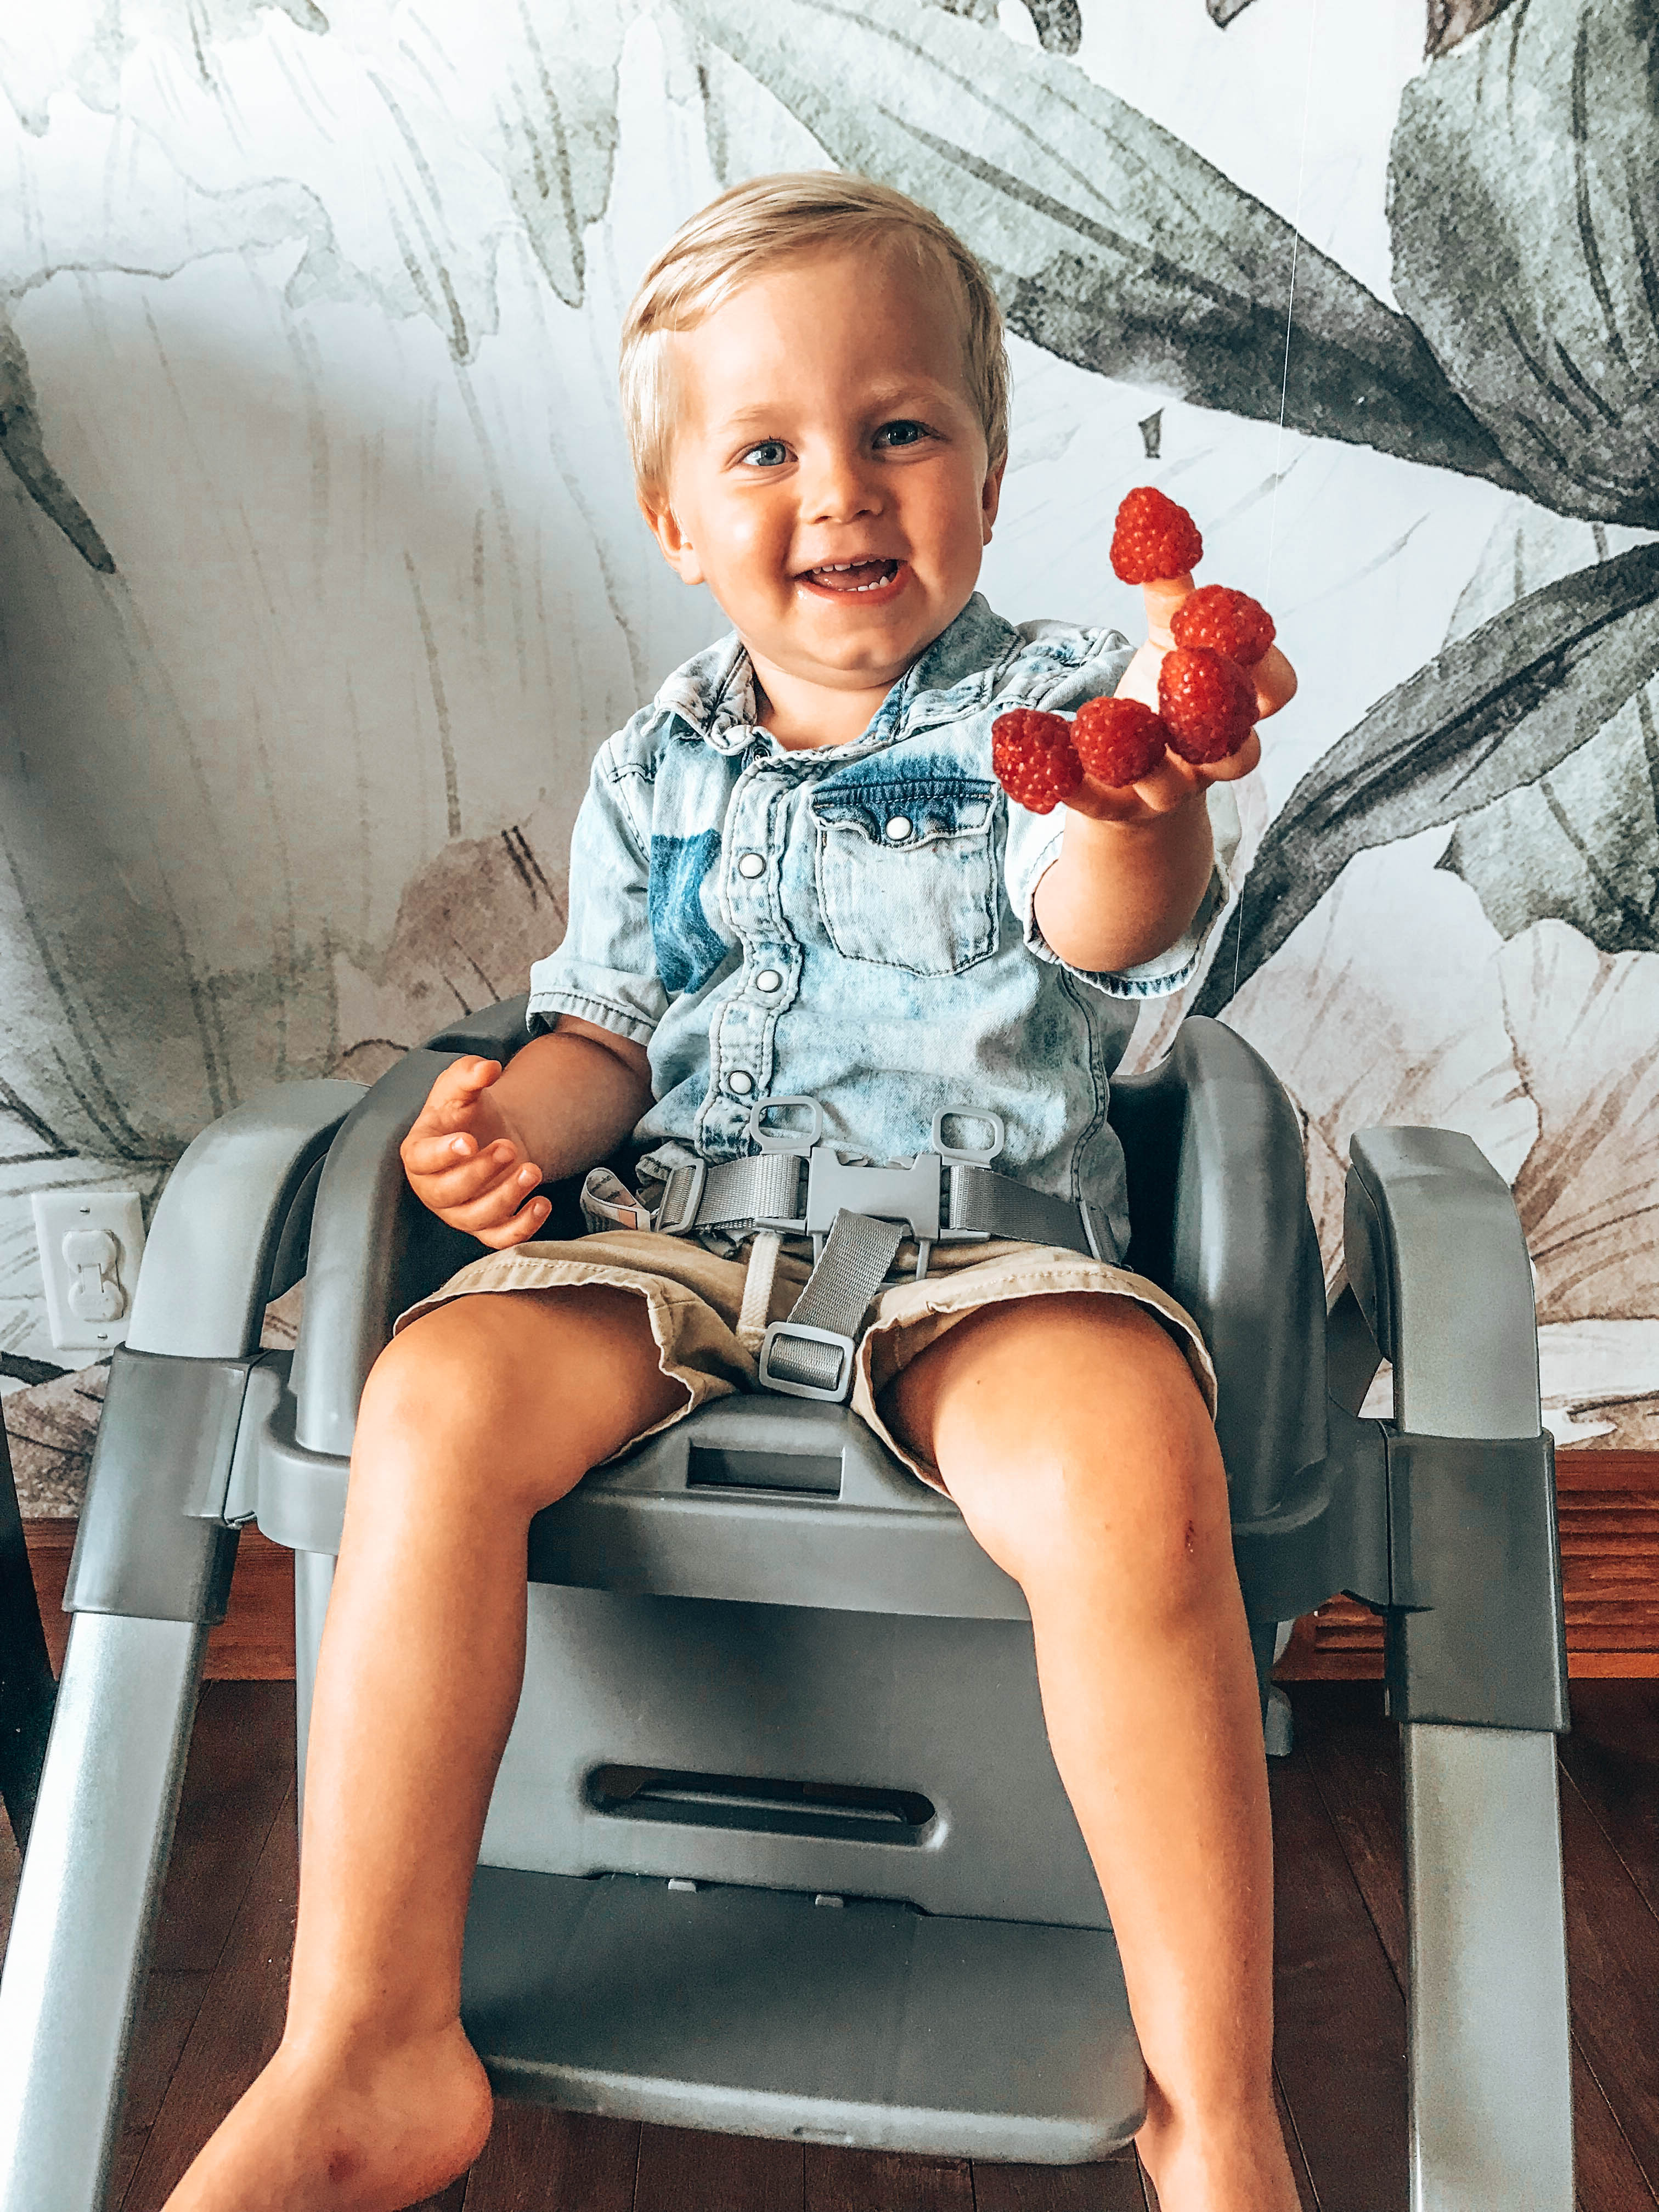 ingenuity high chair canada reviews kitchen table with chairs my honest review of our new 4 in 1 from babies 6b2e5757 dede 43d9 b208 2978e310ea27